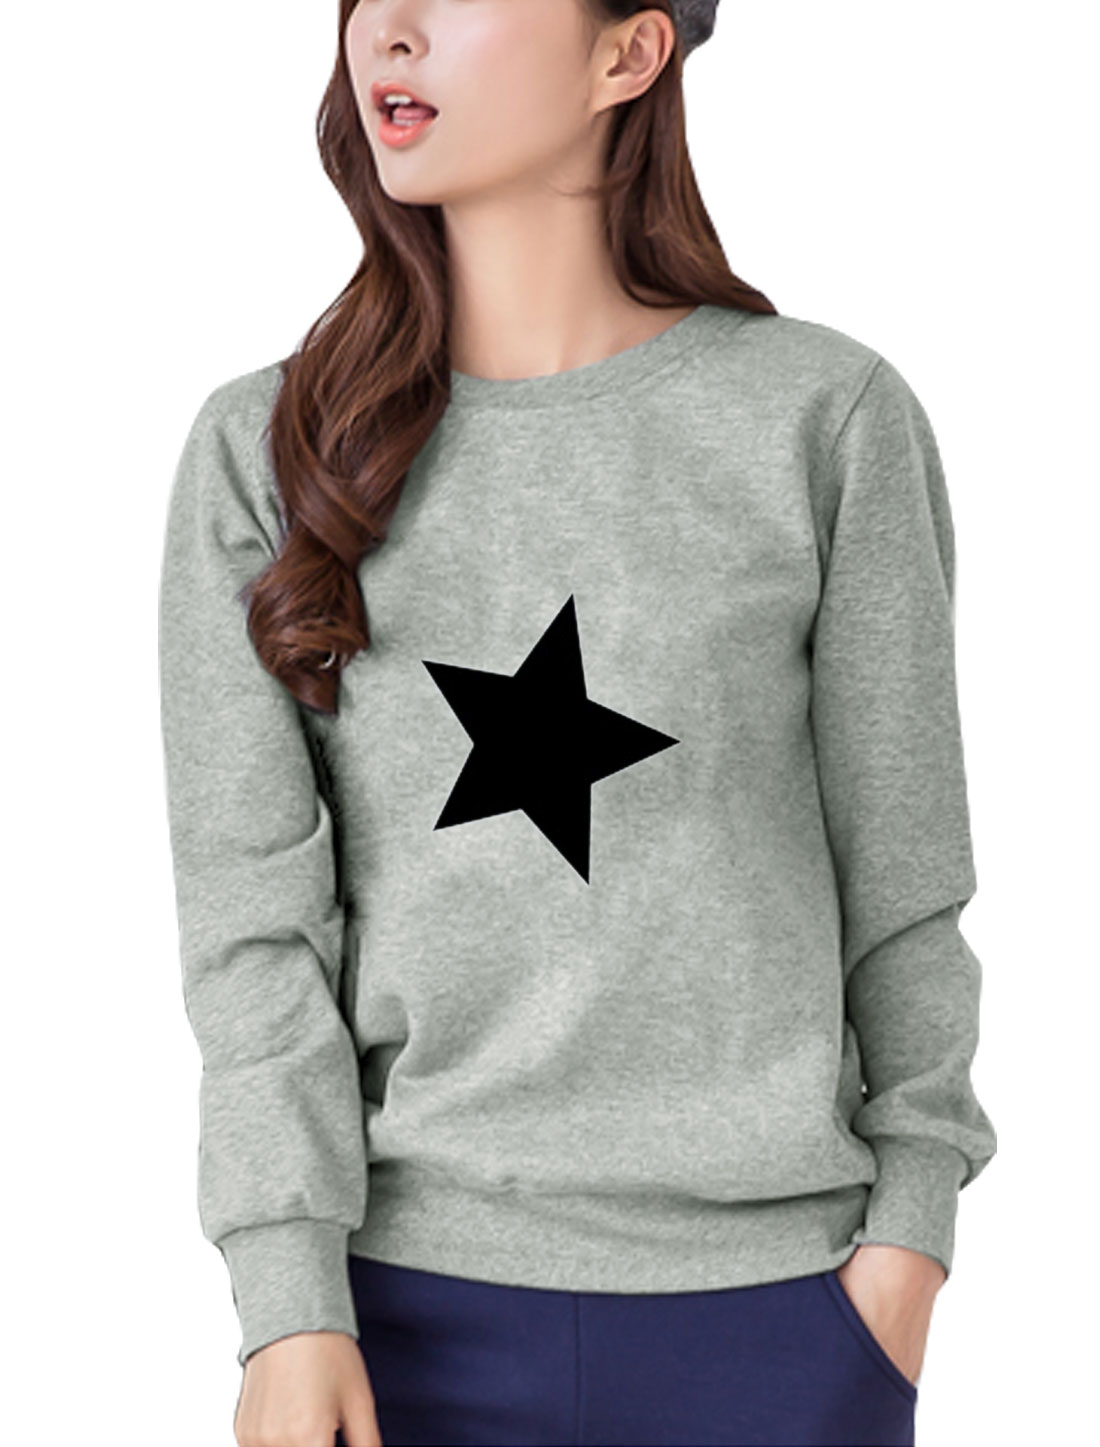 Women Round Neck Long Sleeves Stars Print Sweatshirt Gray S